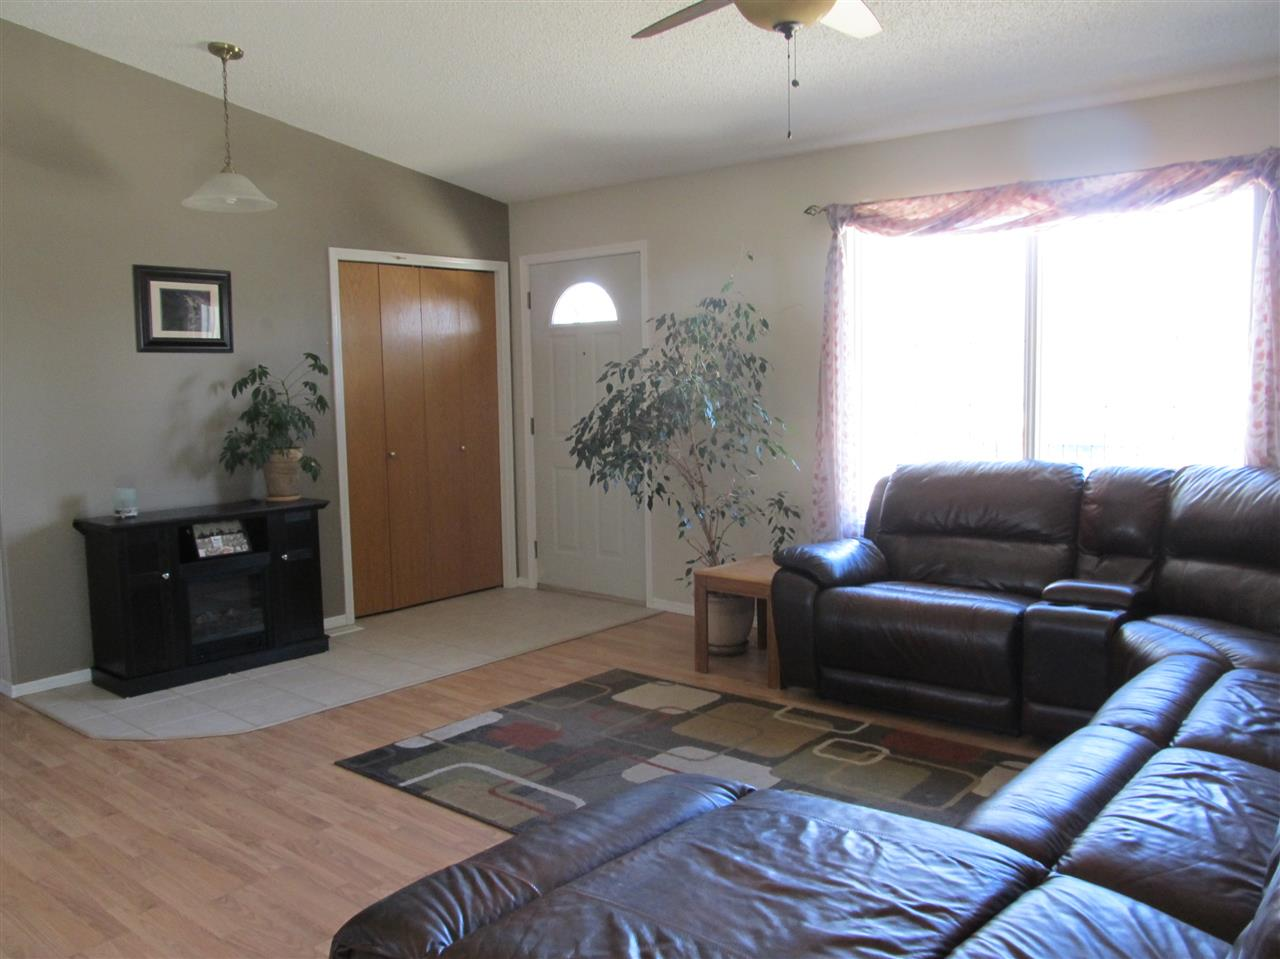 Photo 4: 57016 RR 233: Rural Sturgeon County House for sale : MLS(r) # E4057531